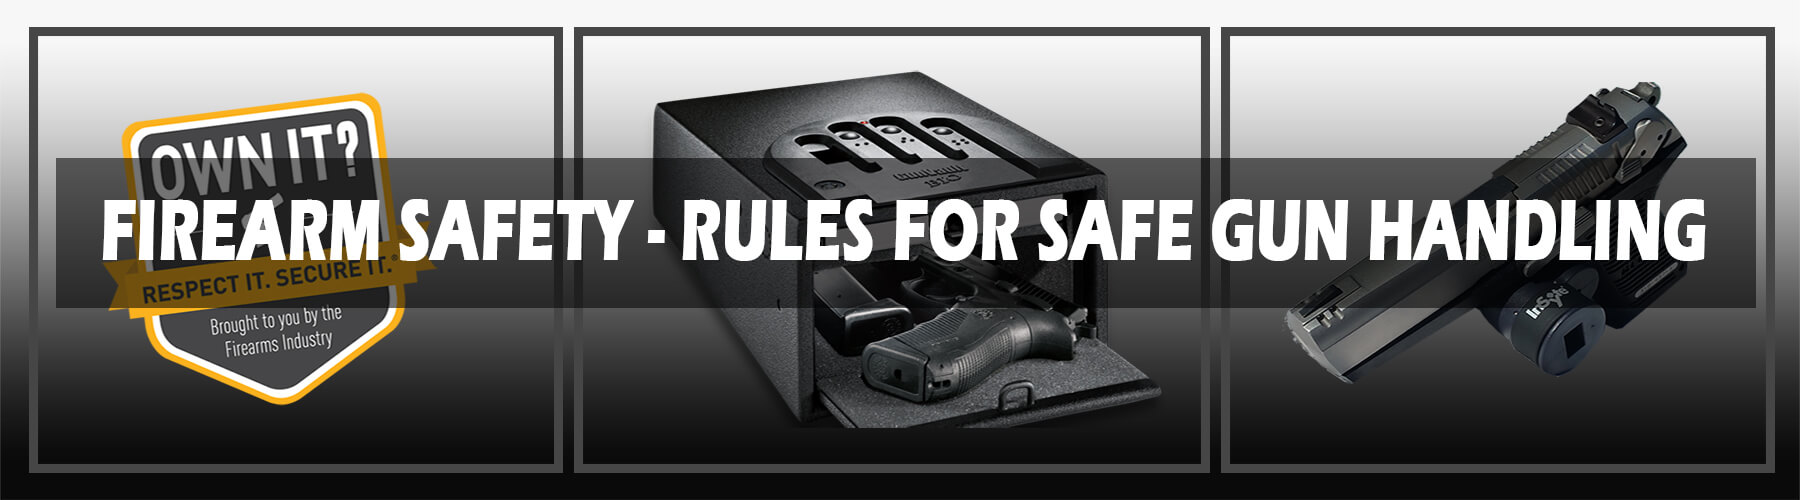 firearm safety tips banner